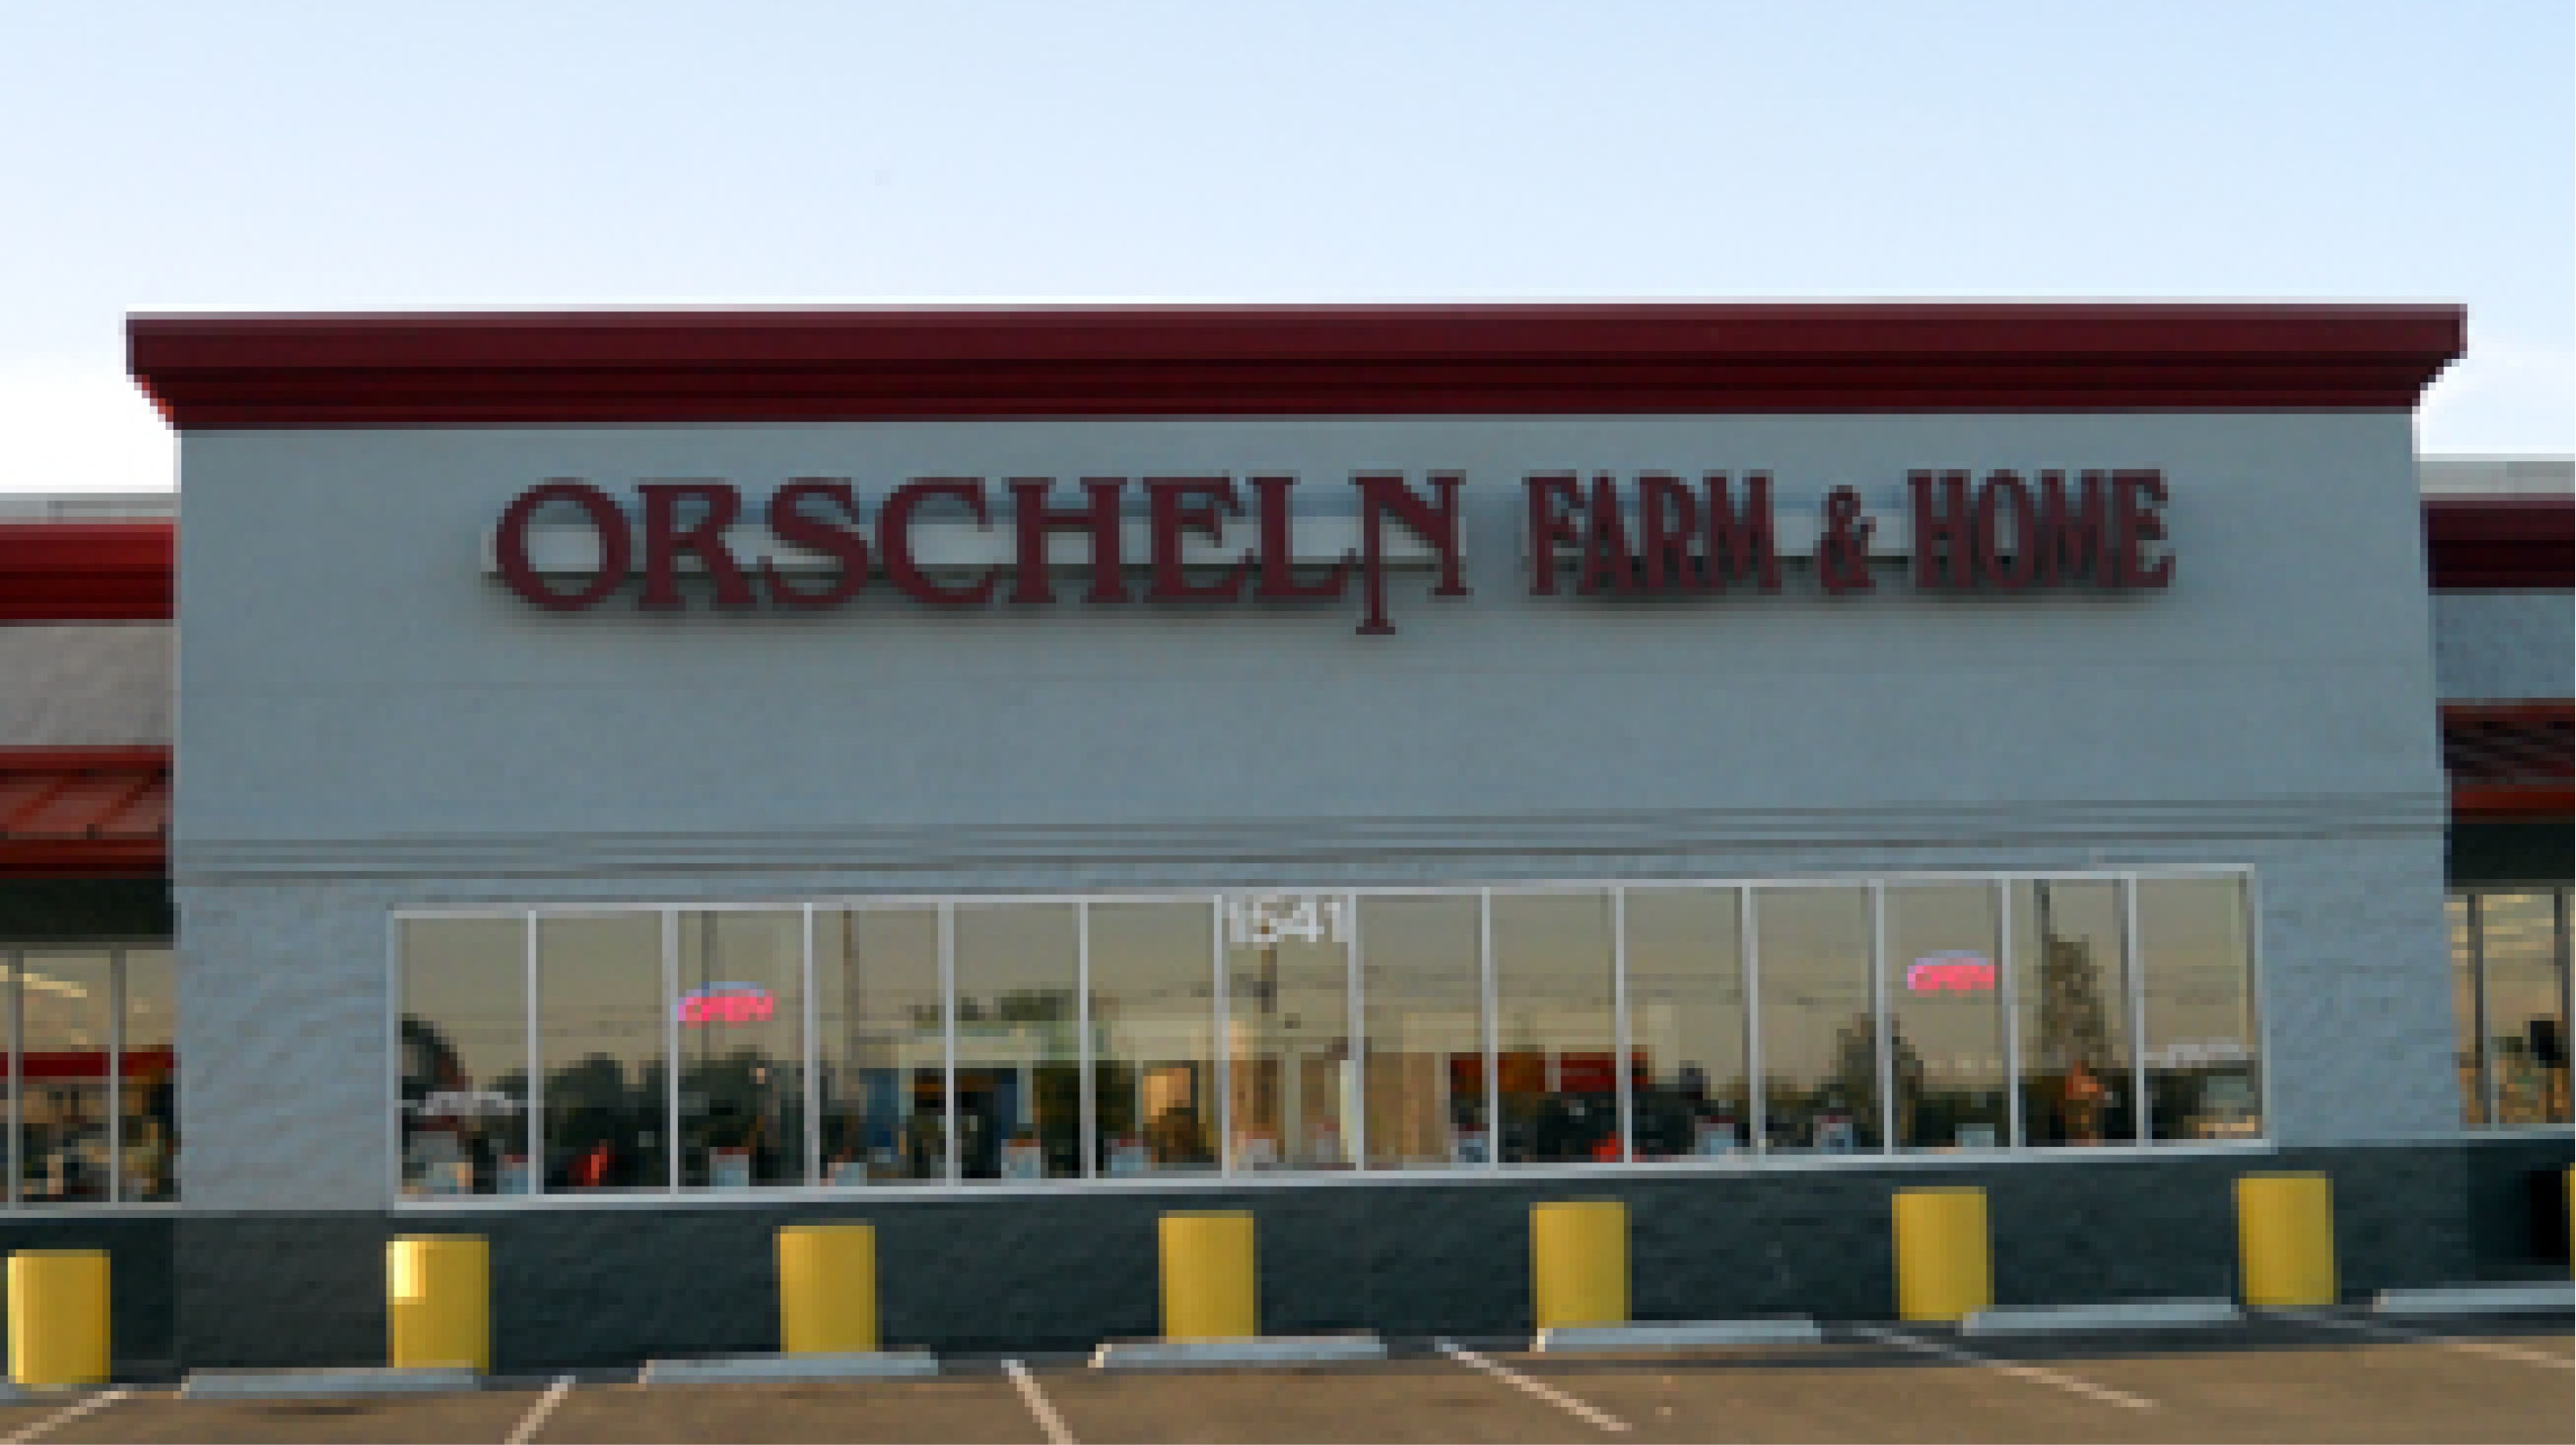 Front view of Orscheln Farm & Home Store in Lawrence, Kansas 66046-5013